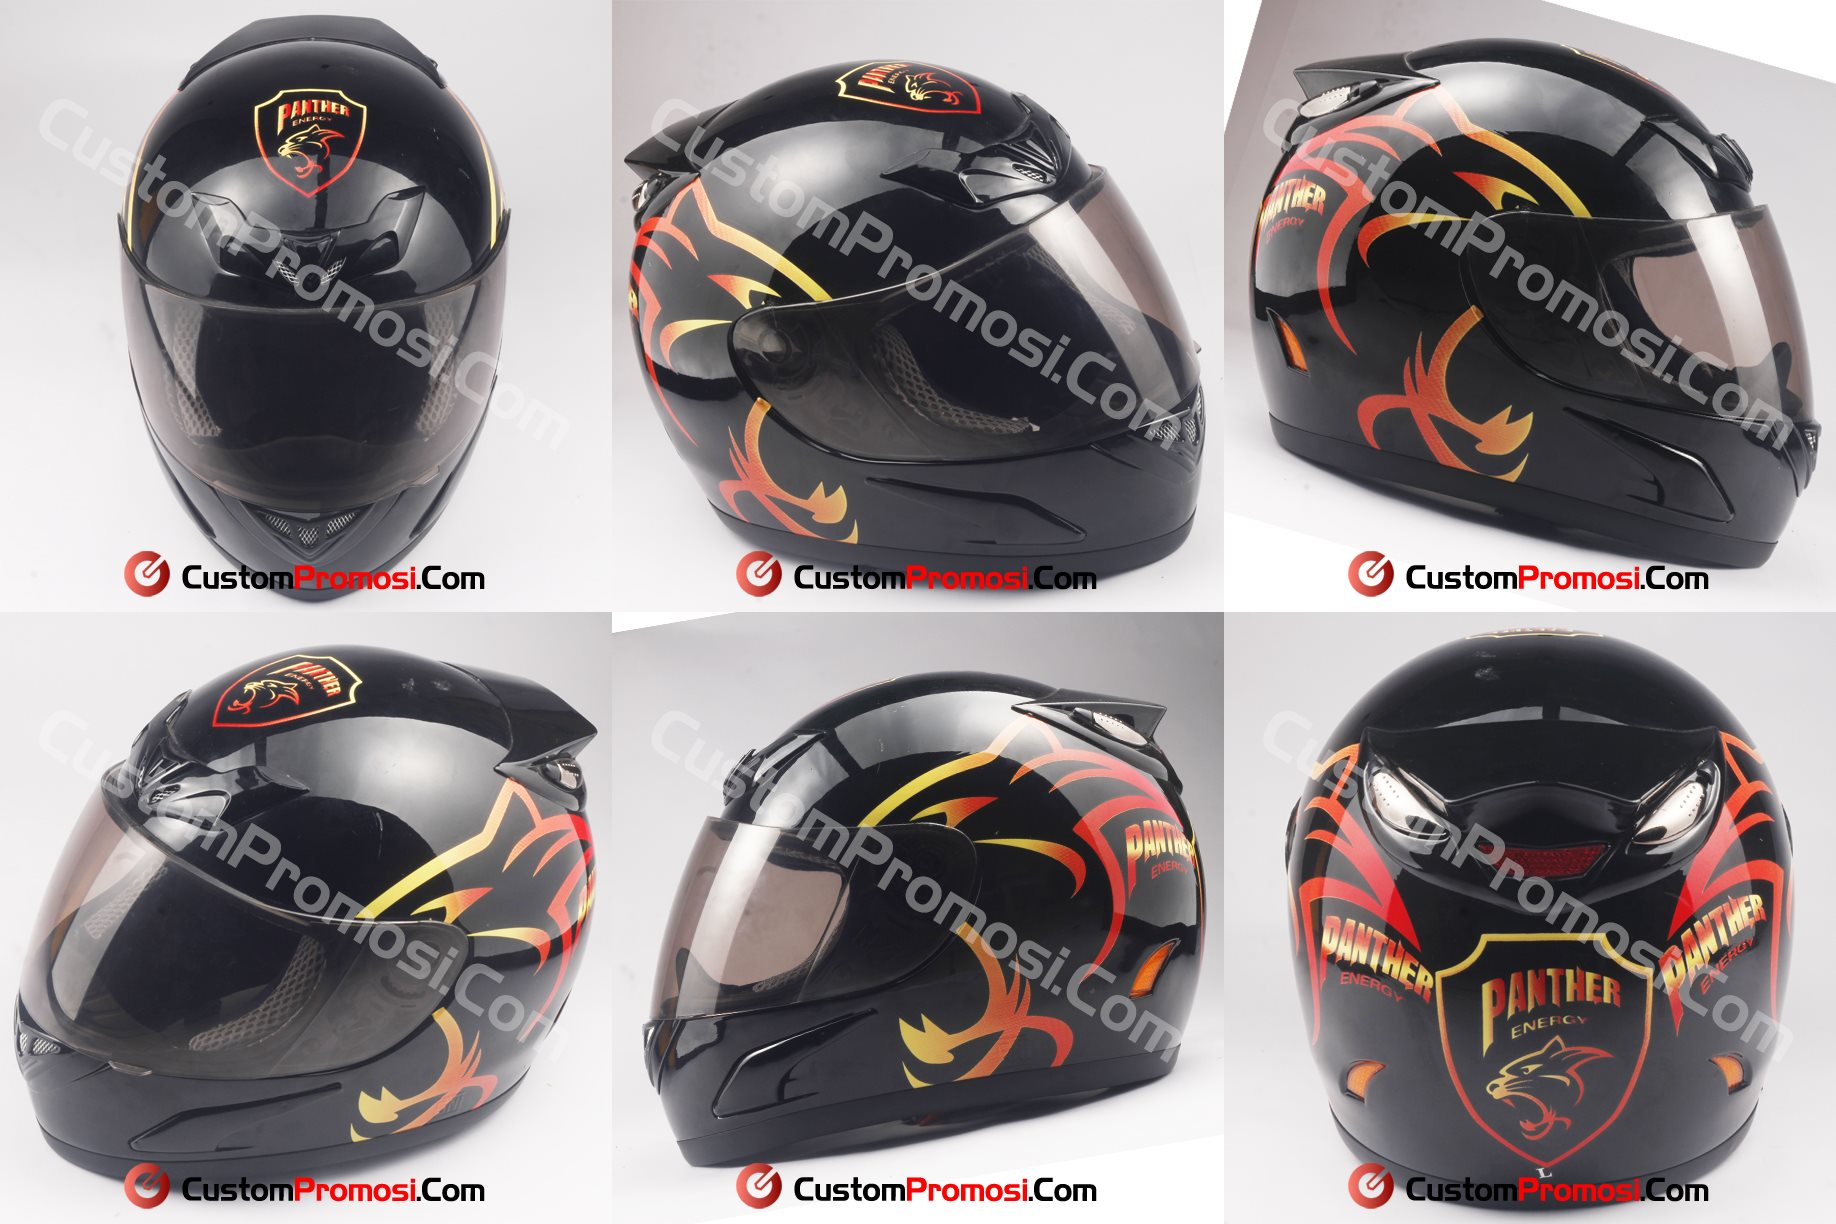 Helm Promosi Panther Energy